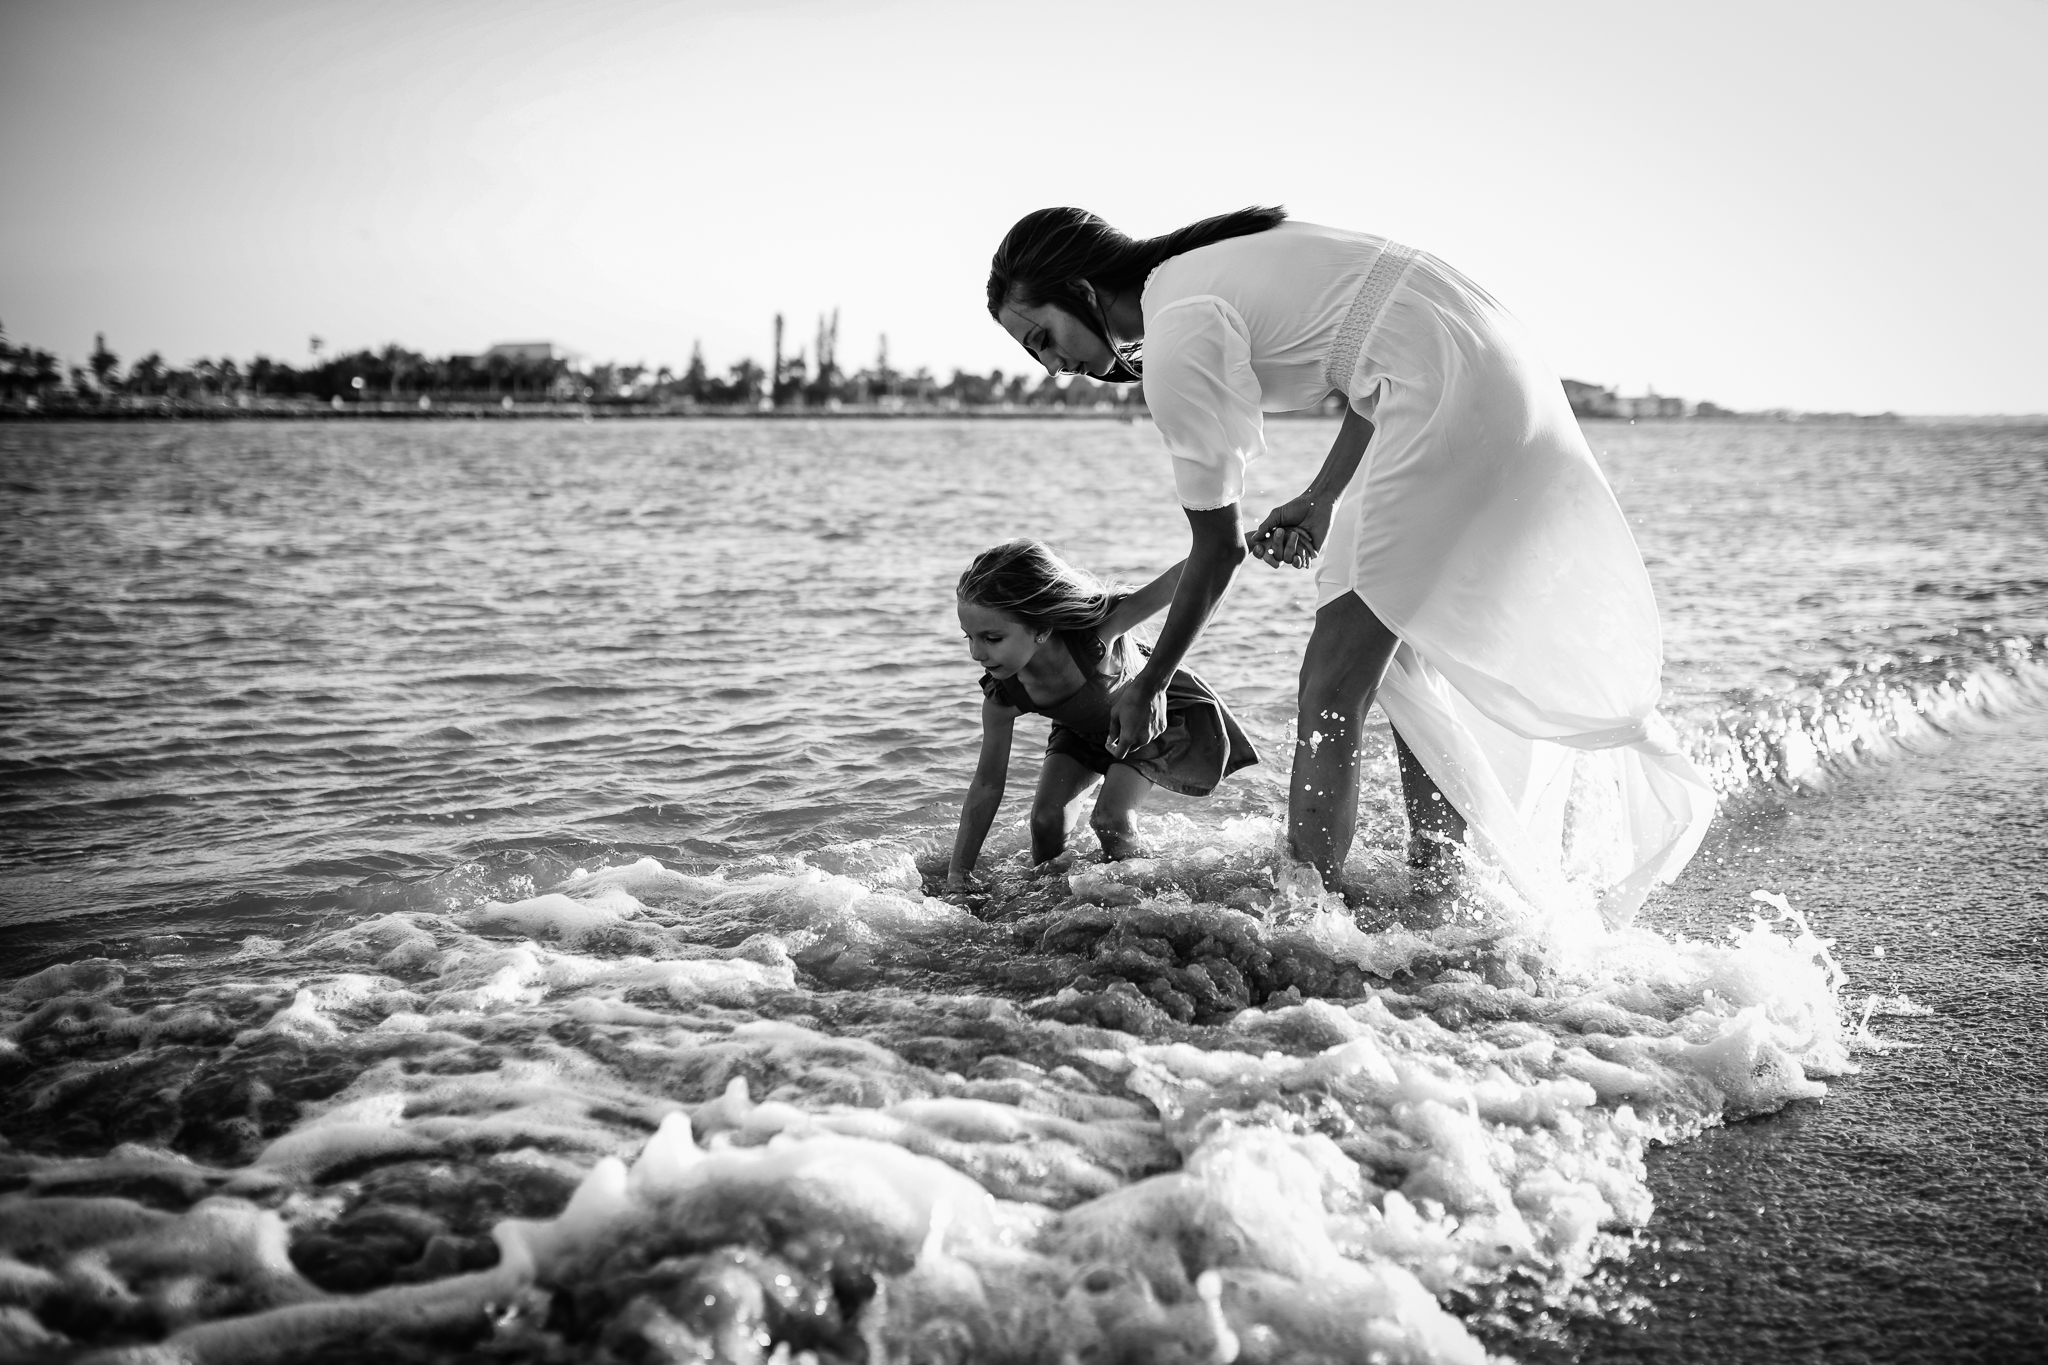 emotionstorytelling.familyphotography.fortpierce.florida.virginiaweddingphotographer.beach.Fortpierceinletstatepark-15.jpg